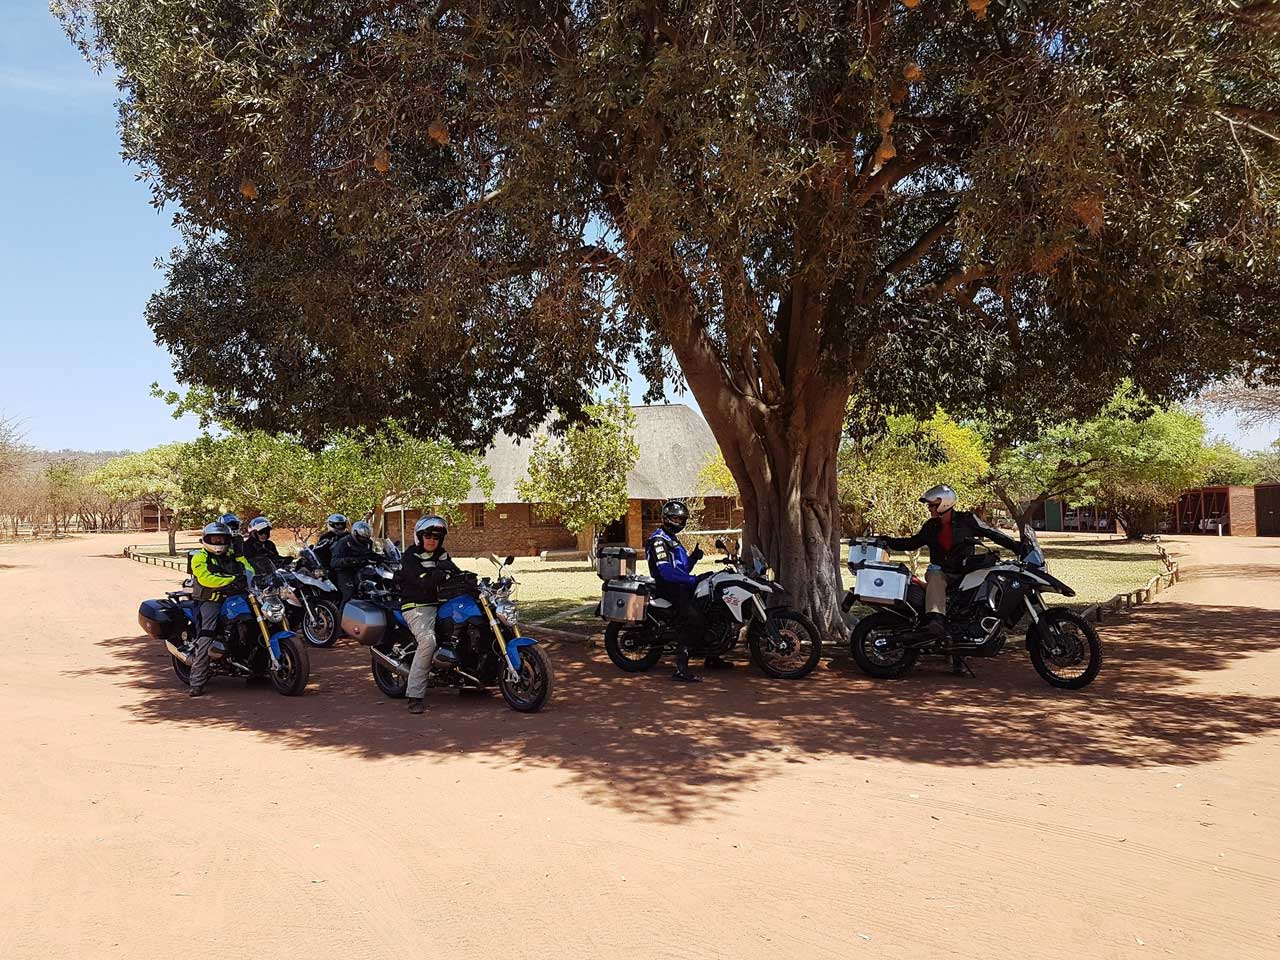 Days 3, 4 - Call of the Wild Motorcycle Tour